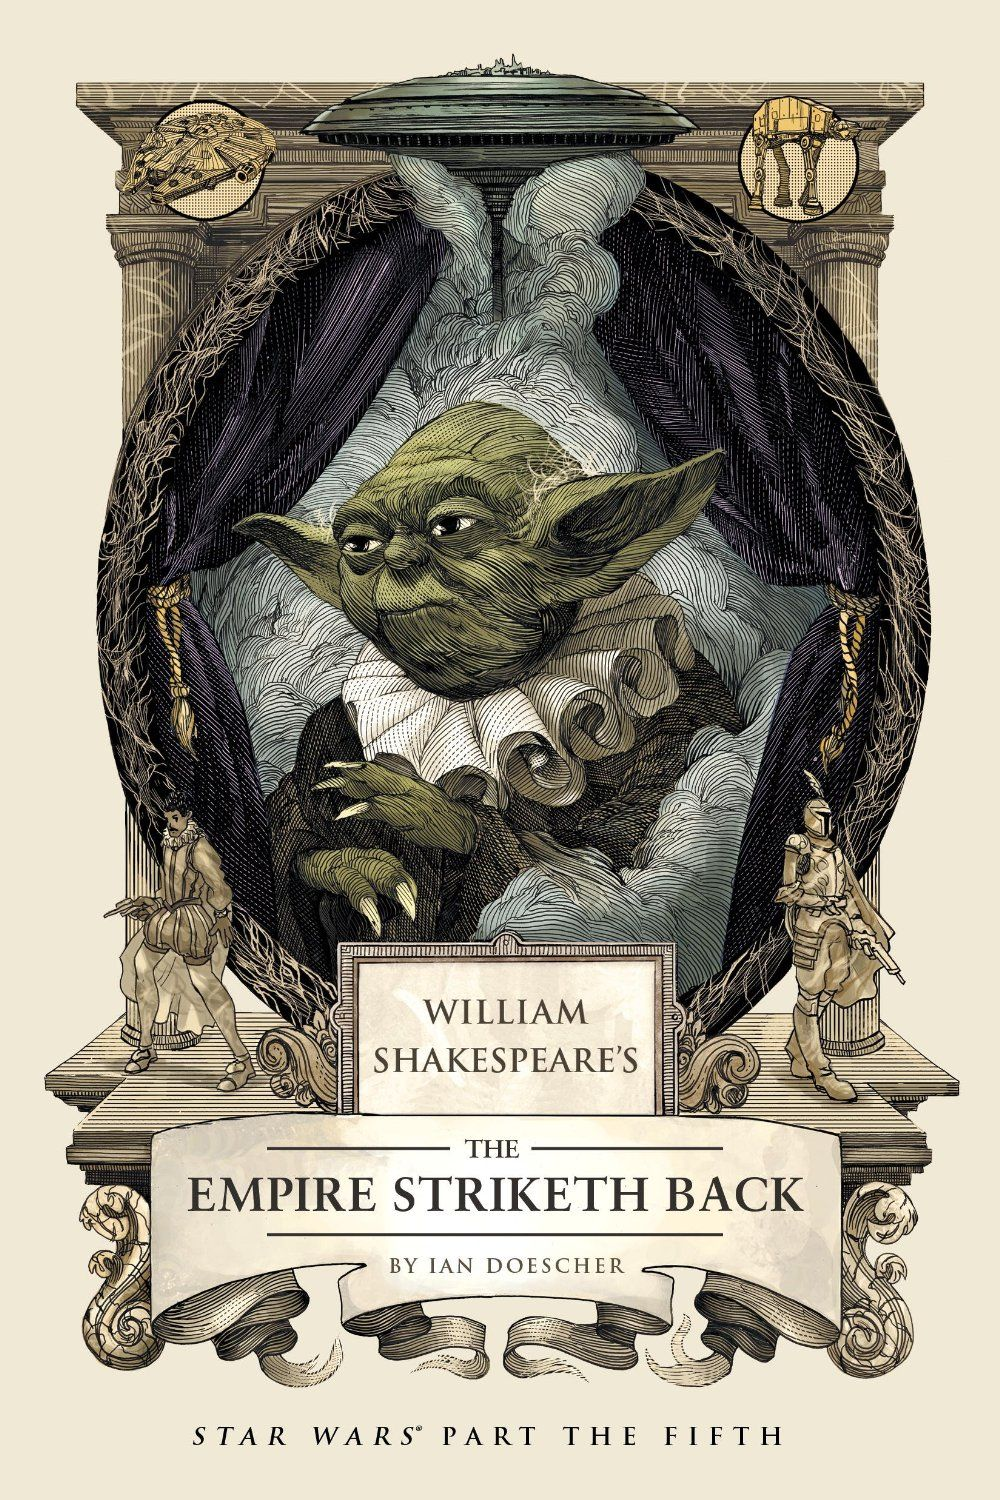 William Shakespeare's The Empire Striketh Back (William Shakespeare's Star Wars Trilogy) by Ian Doescher